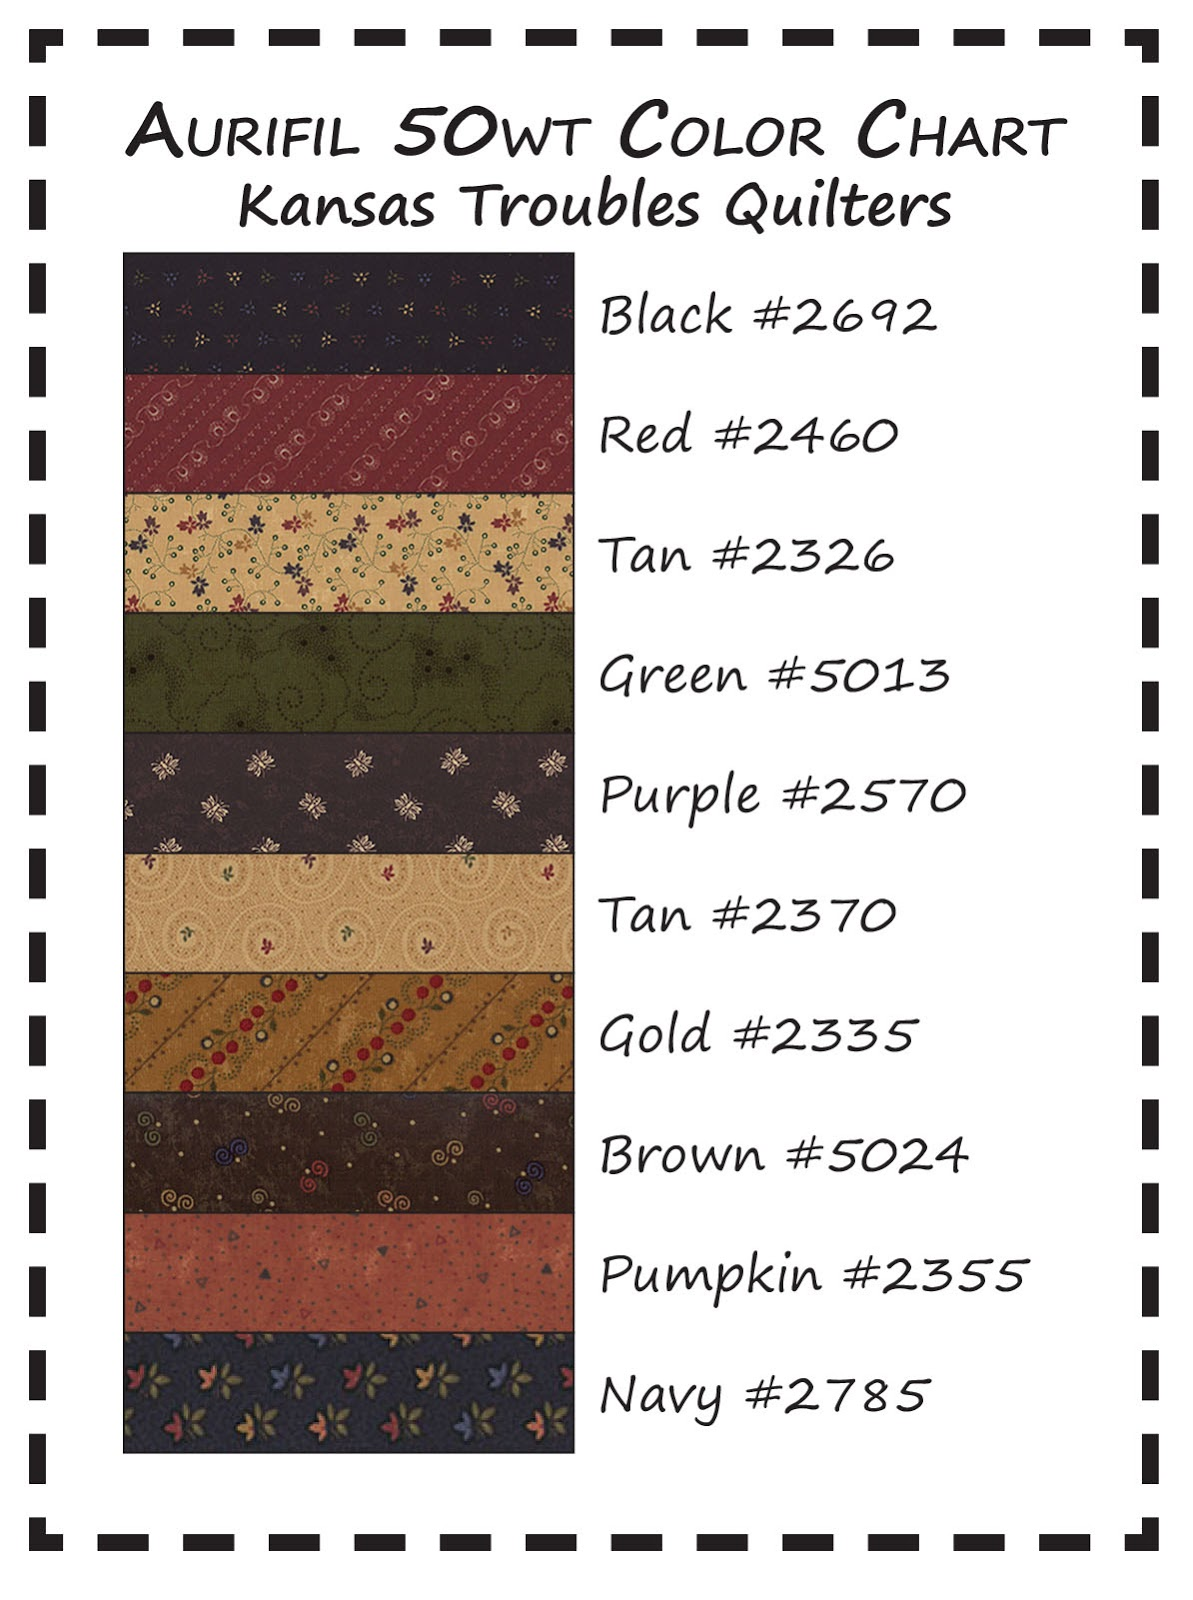 feel free to print our kt thread color chart from here or our website for handy pocket reference - Aurifil Thread Color Chart